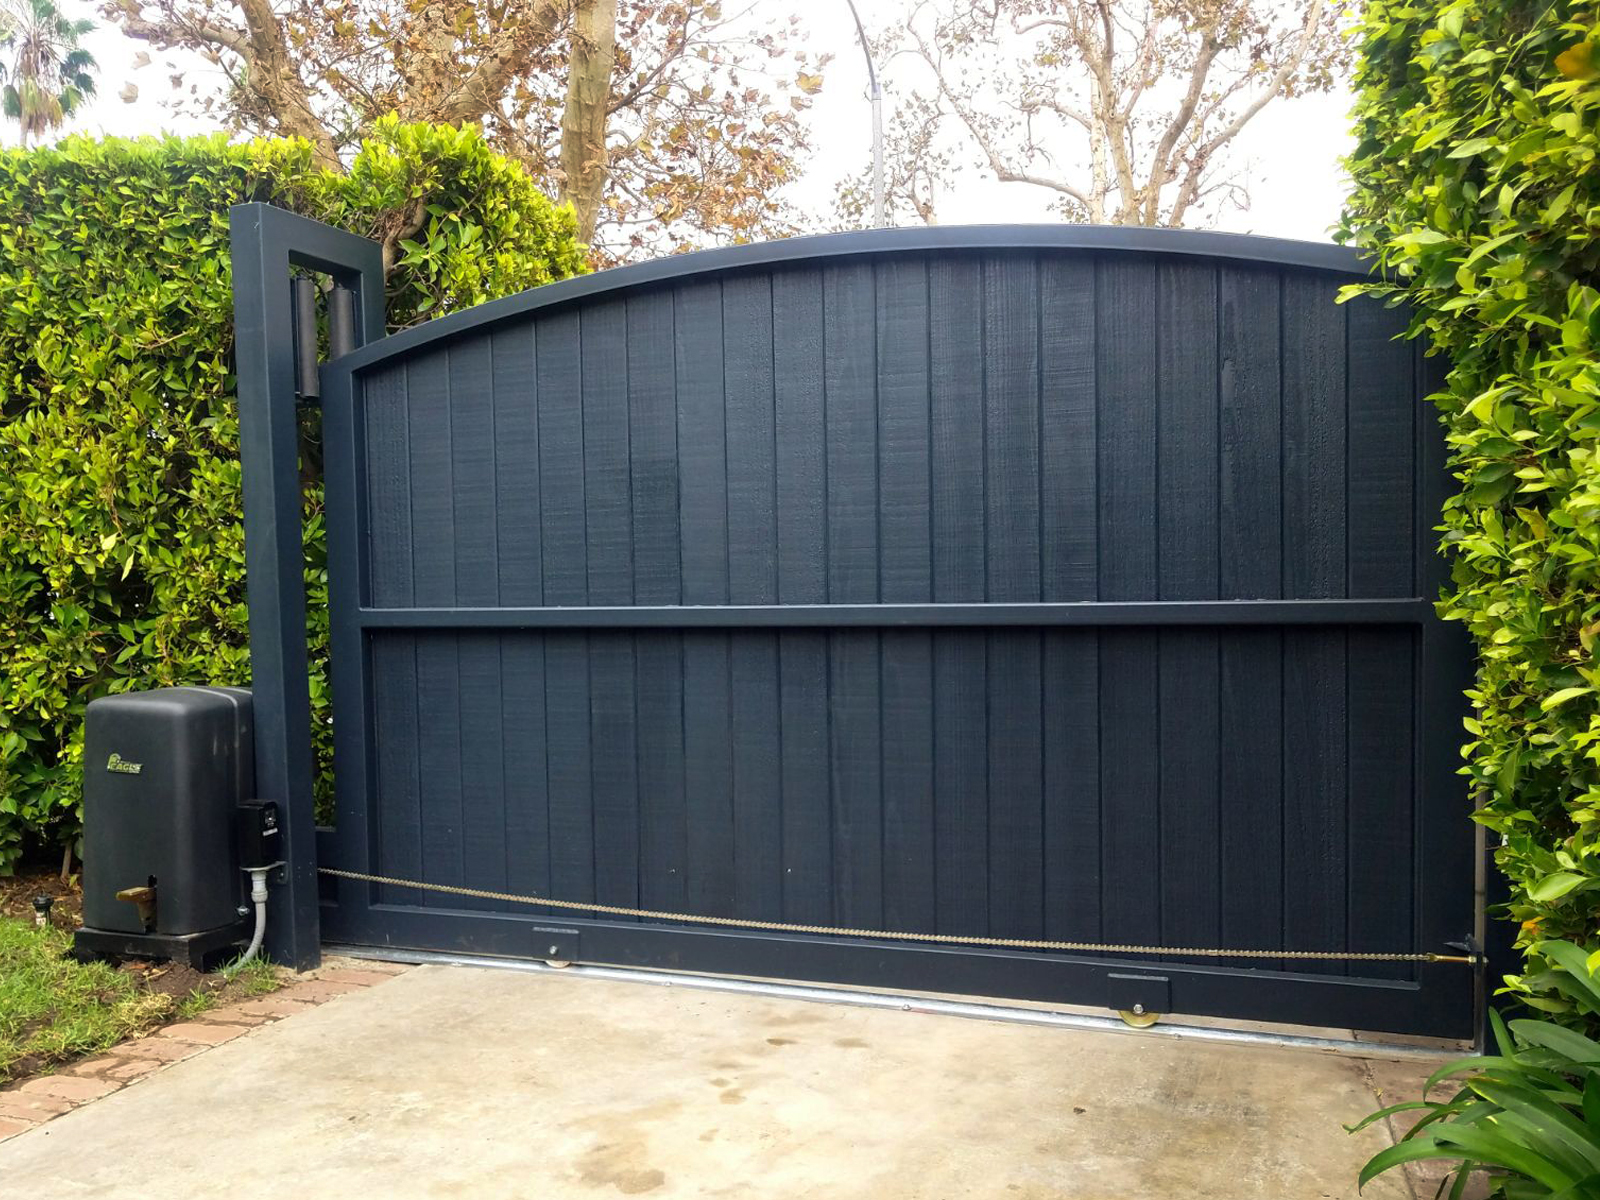 Automatic Driveway Gate Installation Automatic Entry Gates Automatic Gates  Black Wood Fencing And Gates Intercom Security Camera Gates Pedestrian  Gates ...